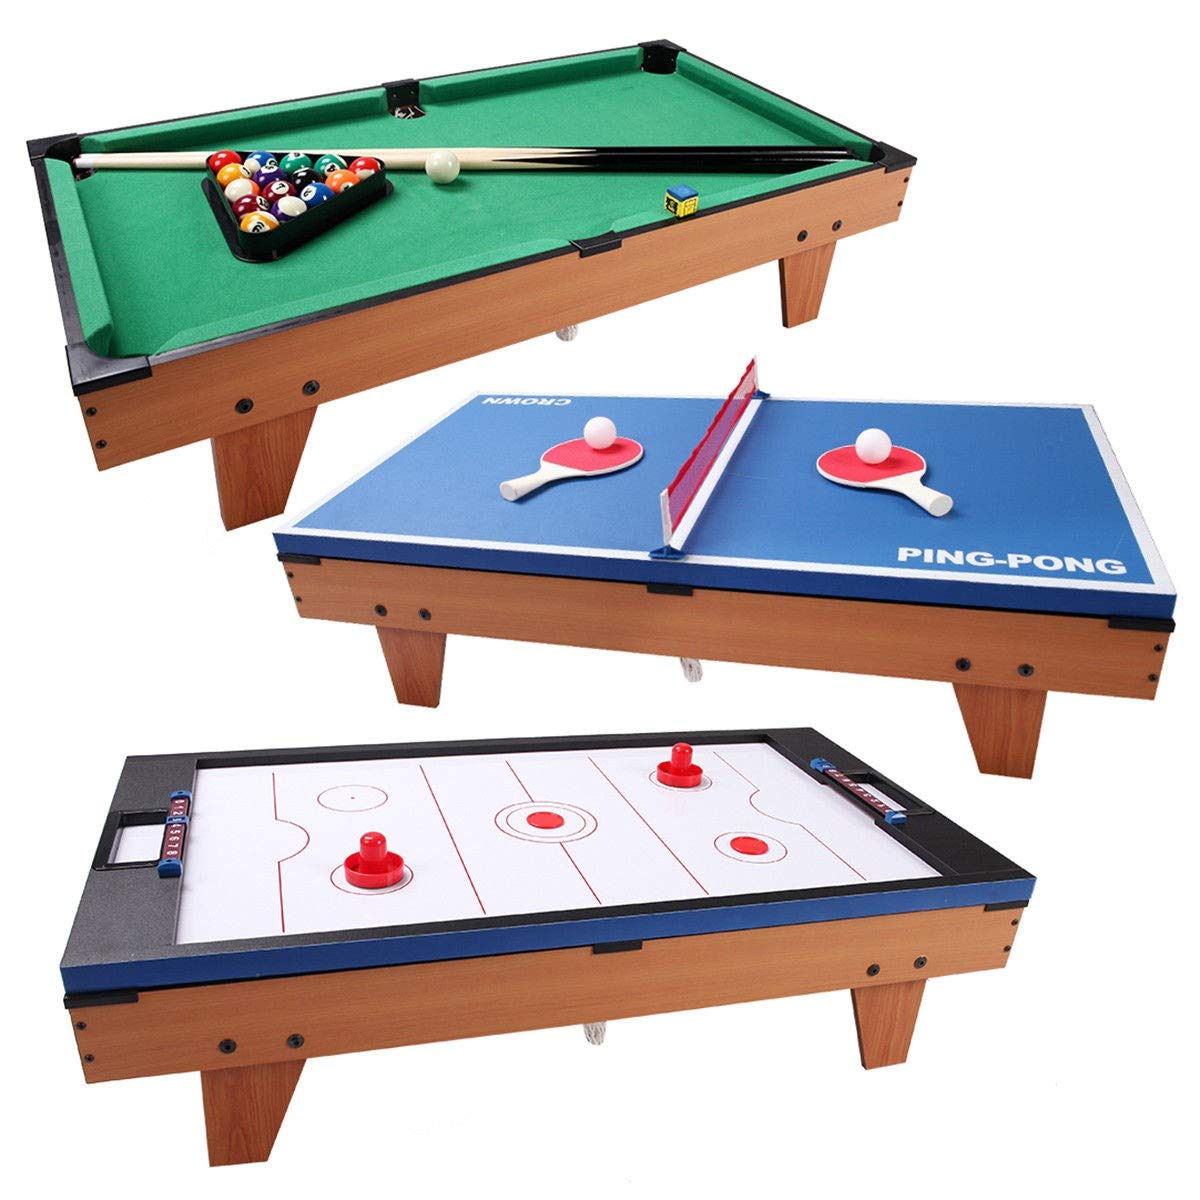 3 in 1 Air Hockey Ping Pong Billiard Multifunctional Table by X-Treat